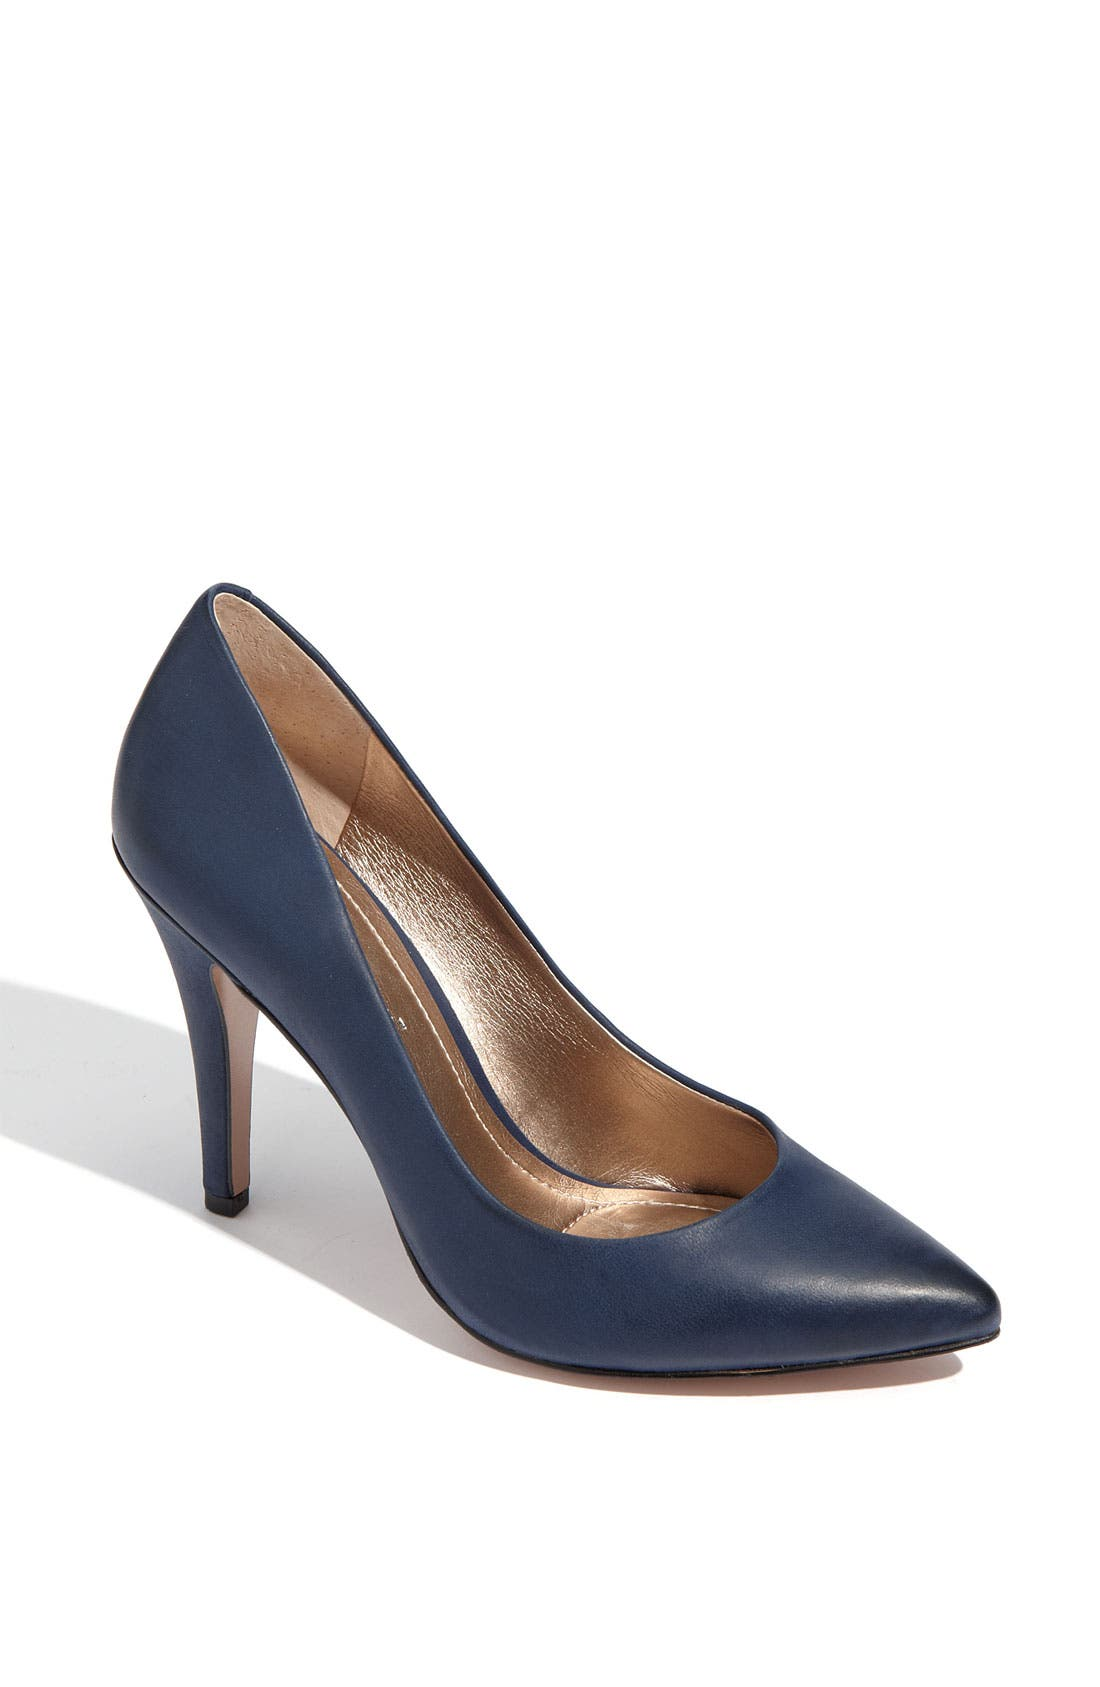 Alternate Image 1 Selected - BCBGeneration 'Cielo' Pump